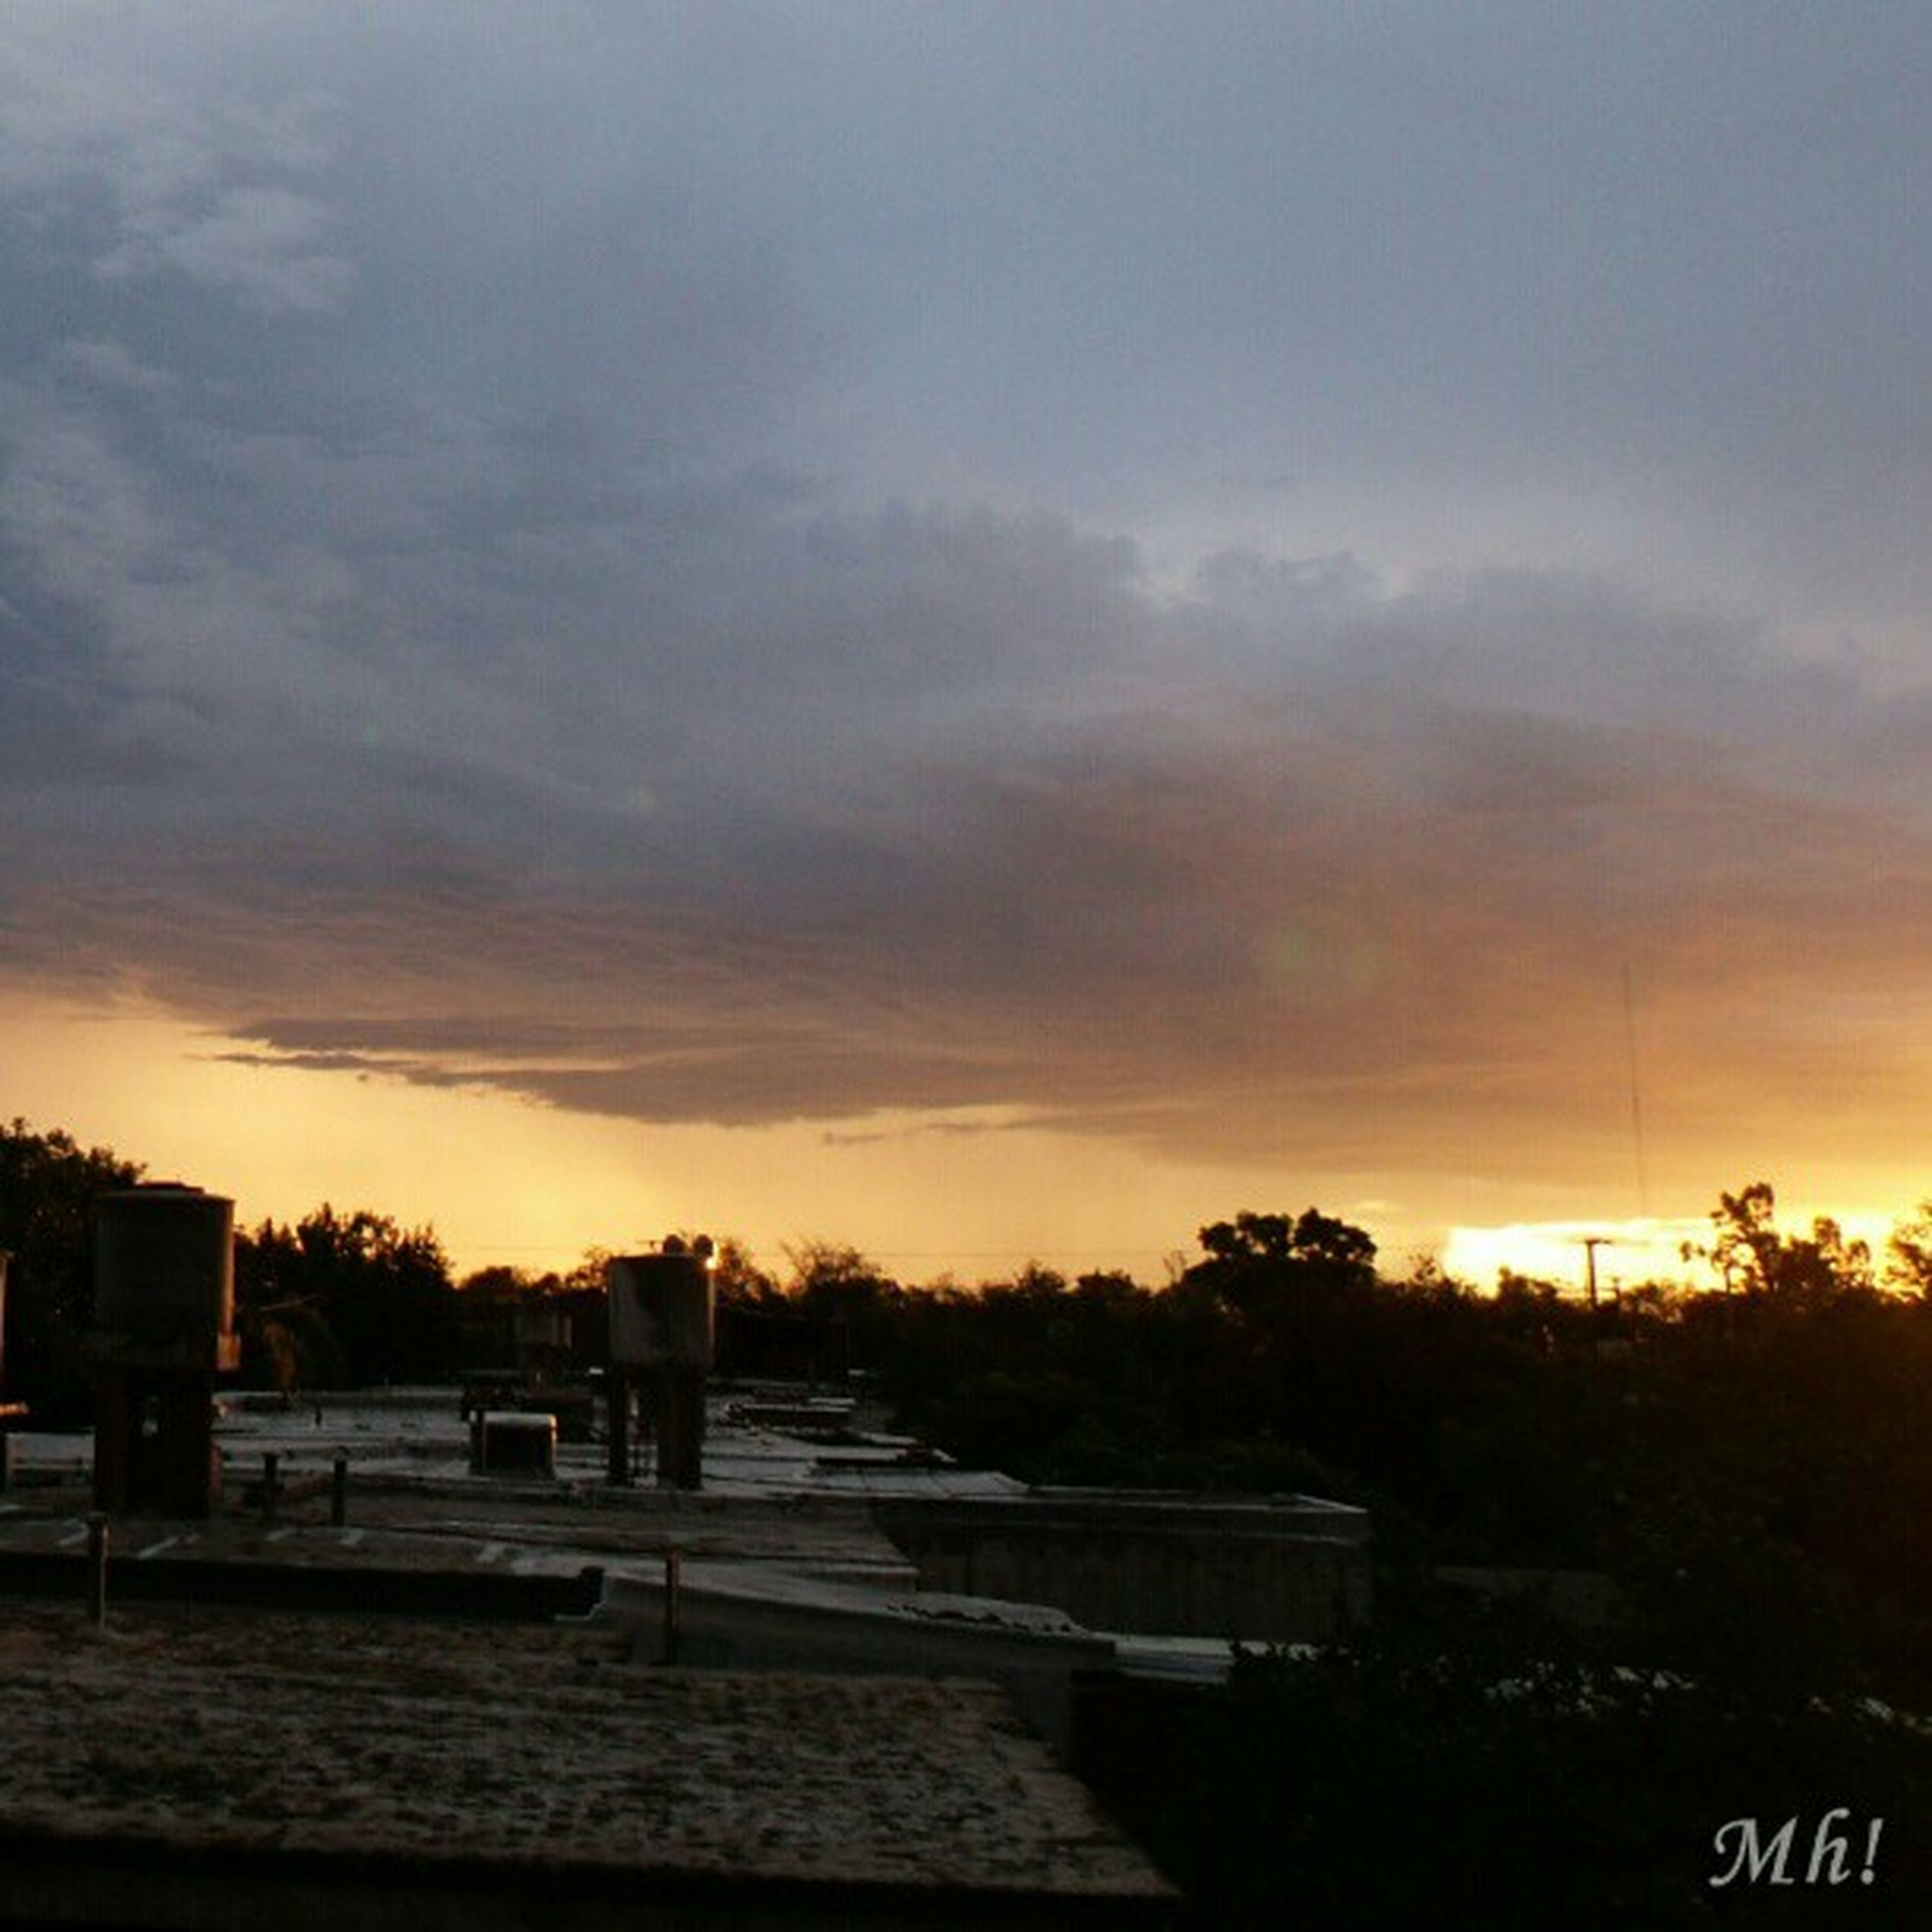 sunset, sky, cloud - sky, orange color, transportation, tree, land vehicle, mode of transport, silhouette, beauty in nature, car, scenics, nature, cloudy, built structure, road, water, building exterior, weather, tranquility